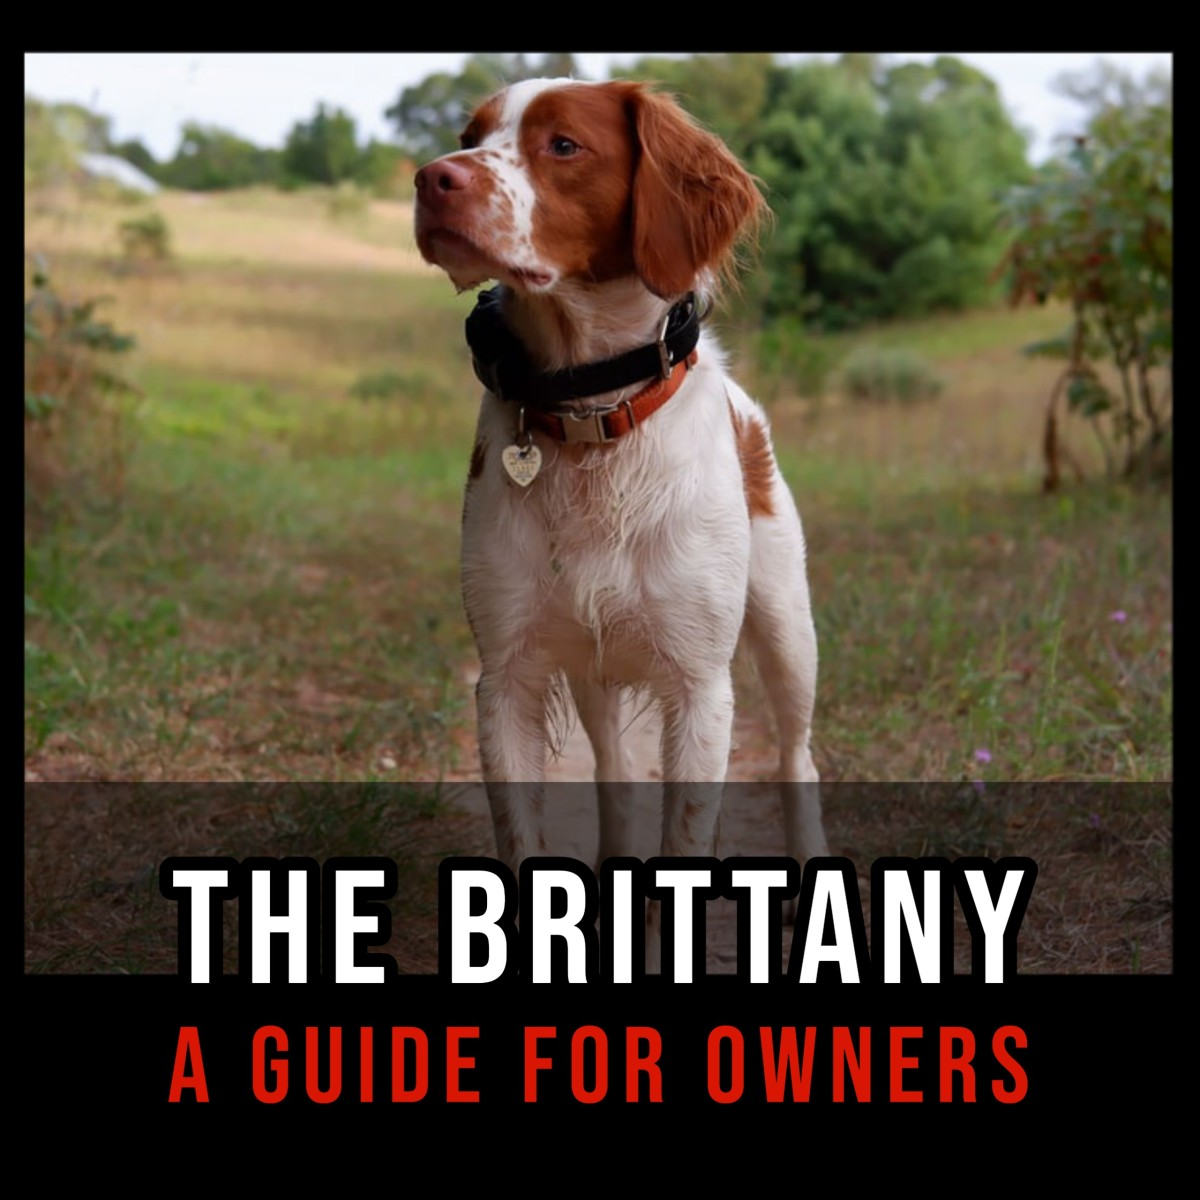 The Brittany: A Guide for Owners.